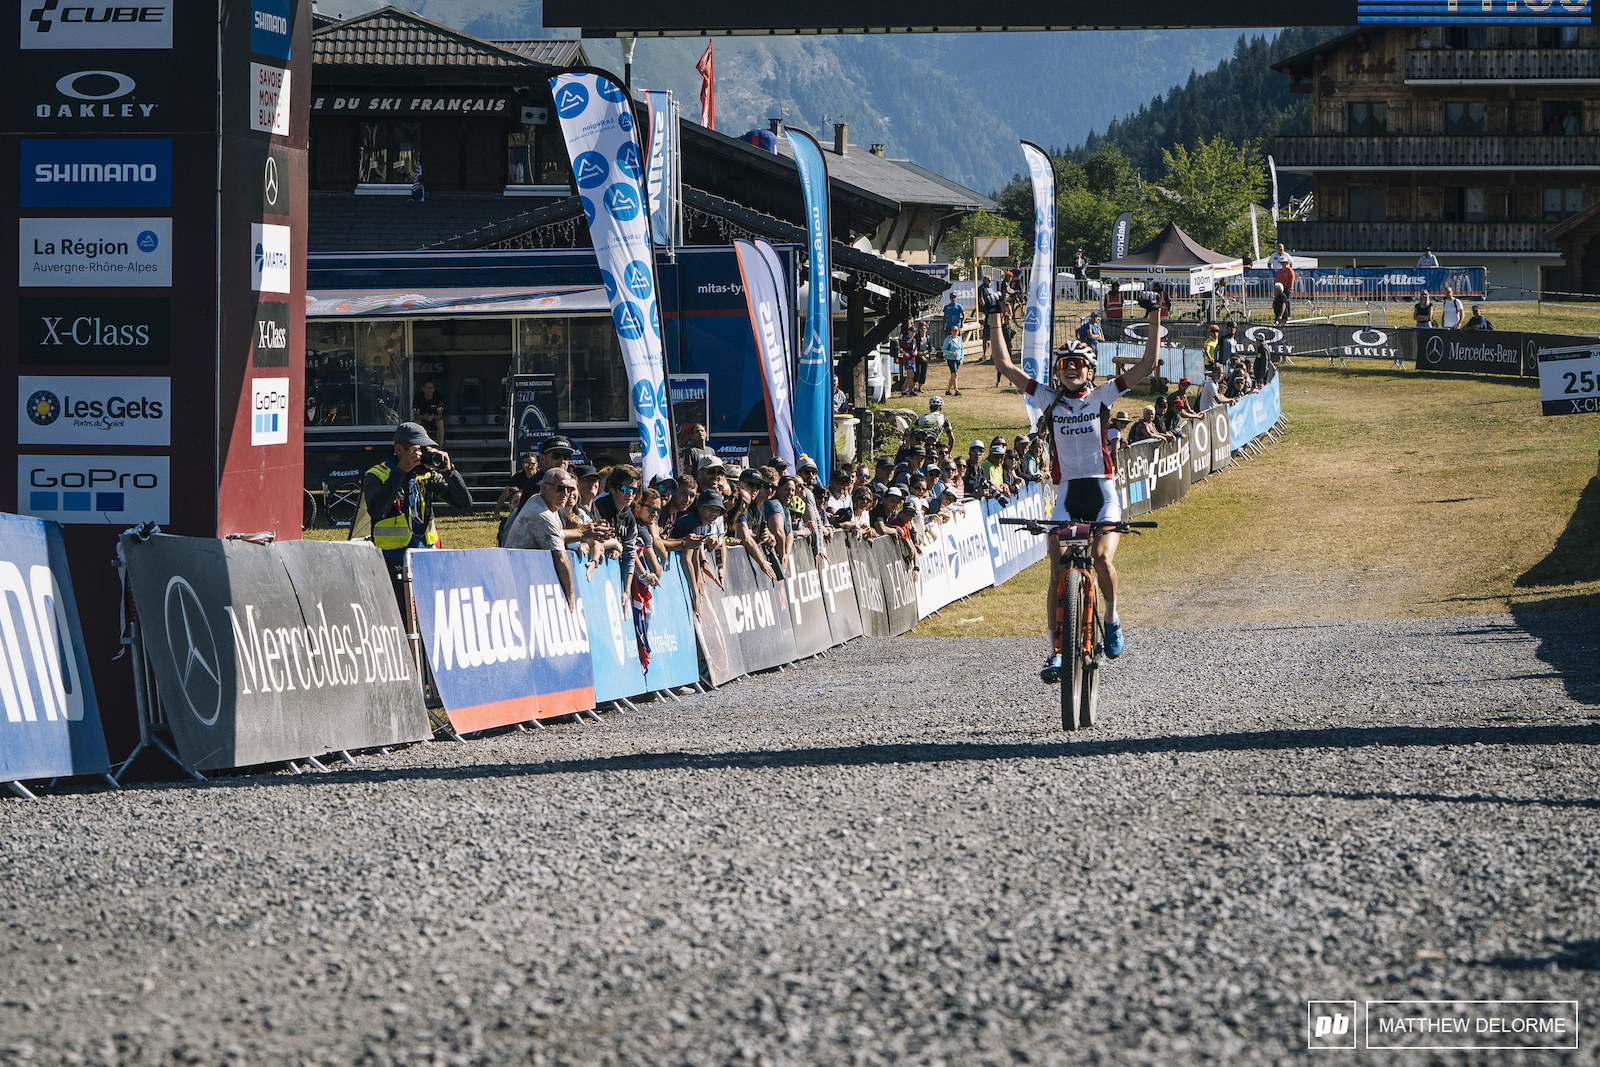 Ronja Eibl takes another win in the U23 women s race.